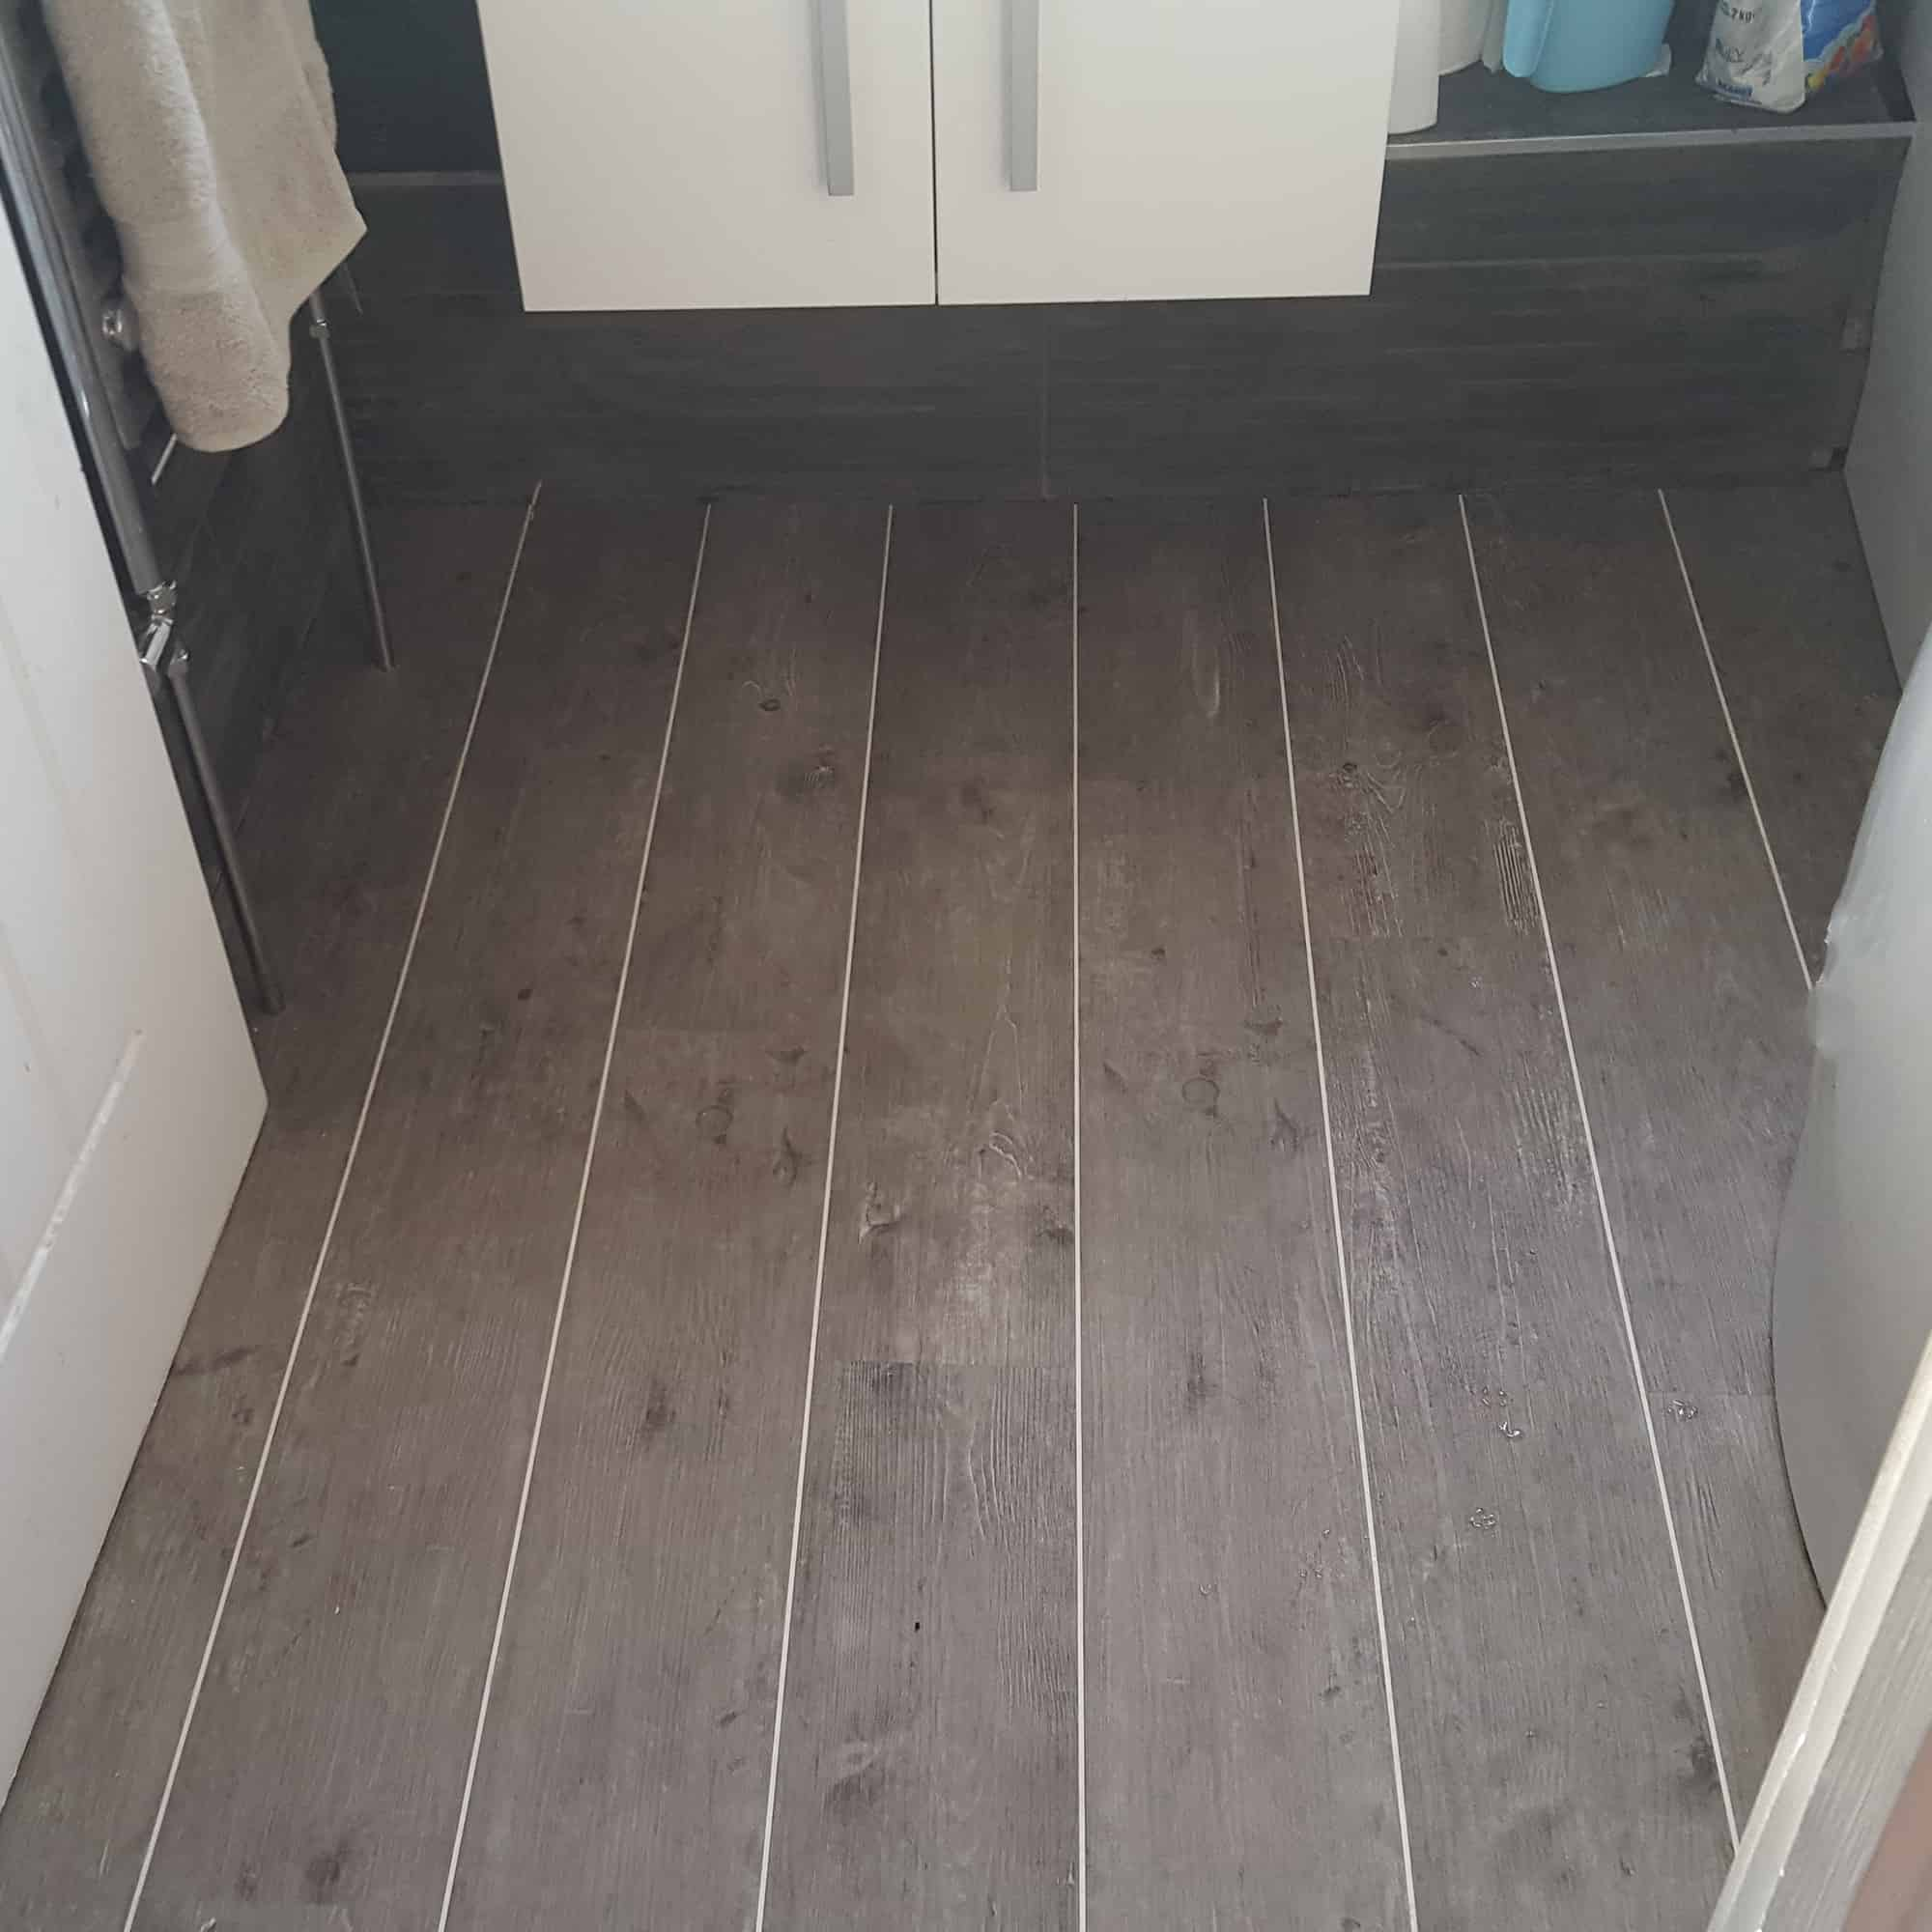 LVT Camero Flooring in bathroom